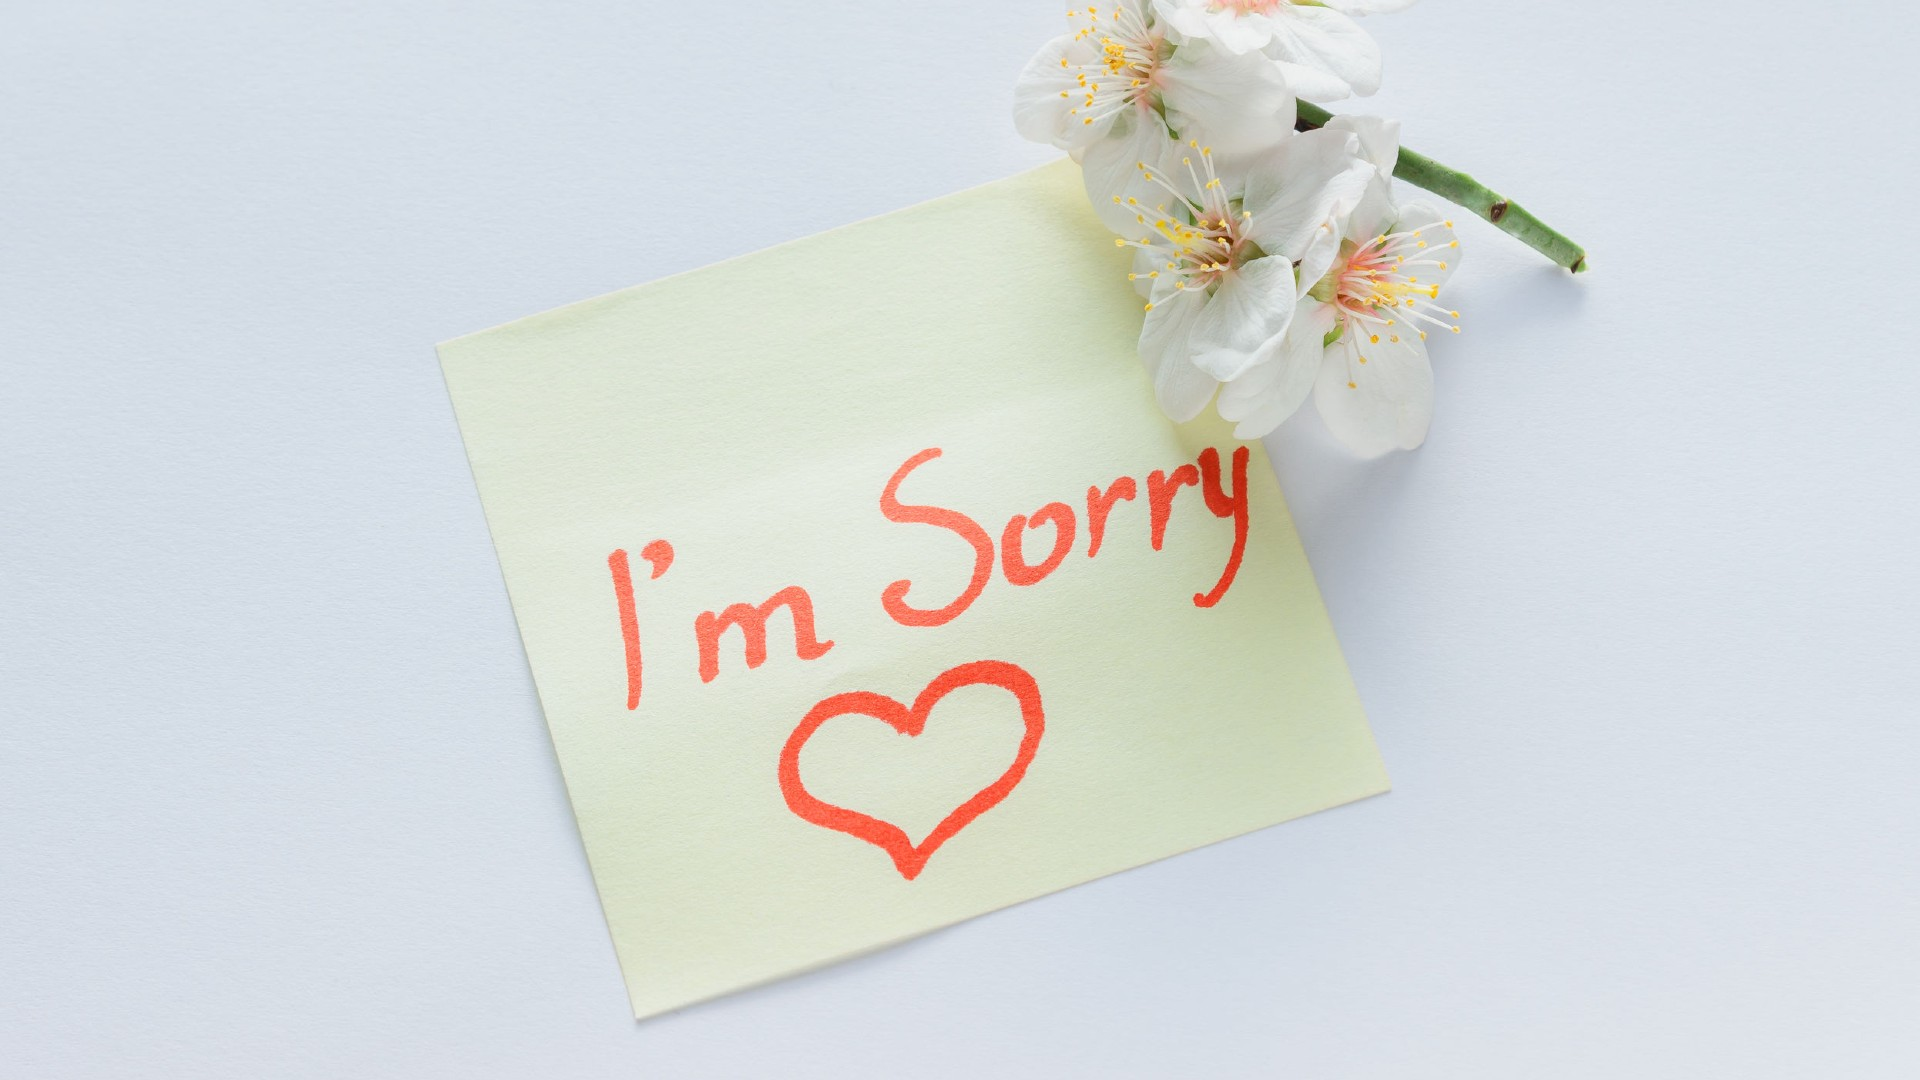 How To Apologise Without Looking Like A Tool